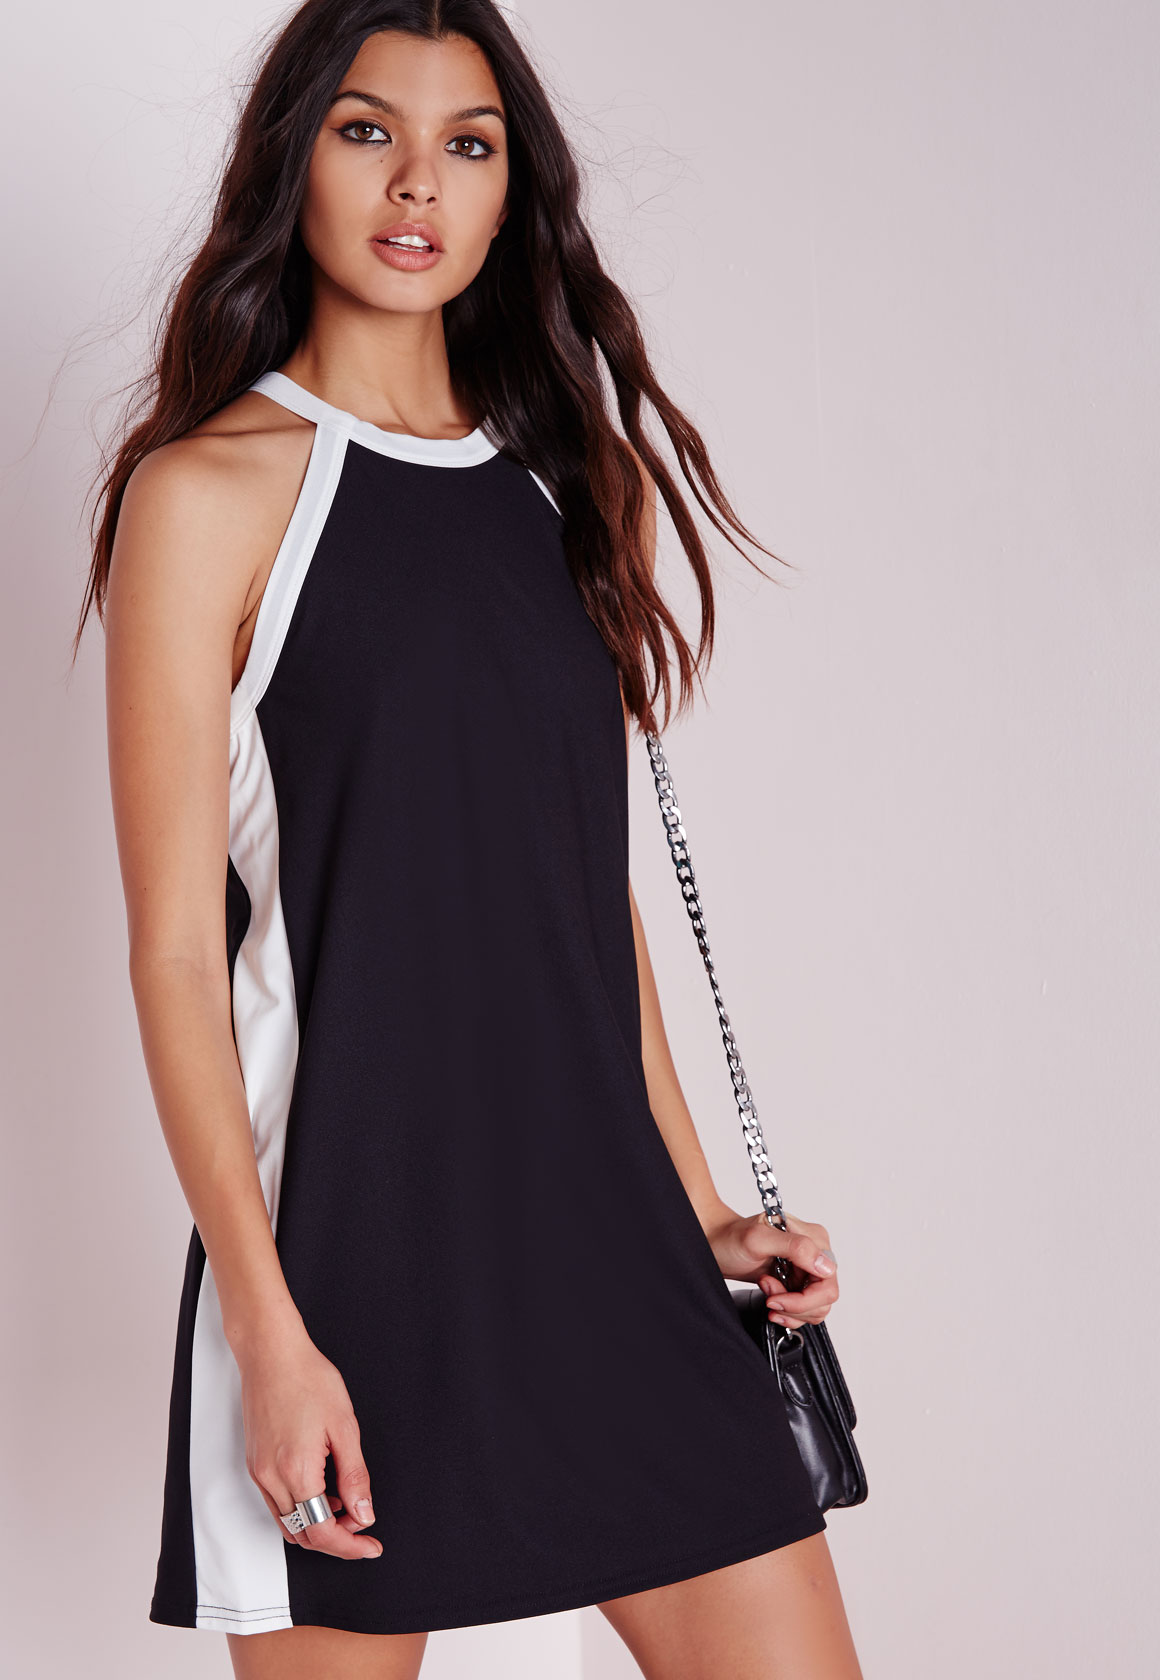 Shop Missguided online and buy Trim Tie Back Shift Dress Black by Missguided